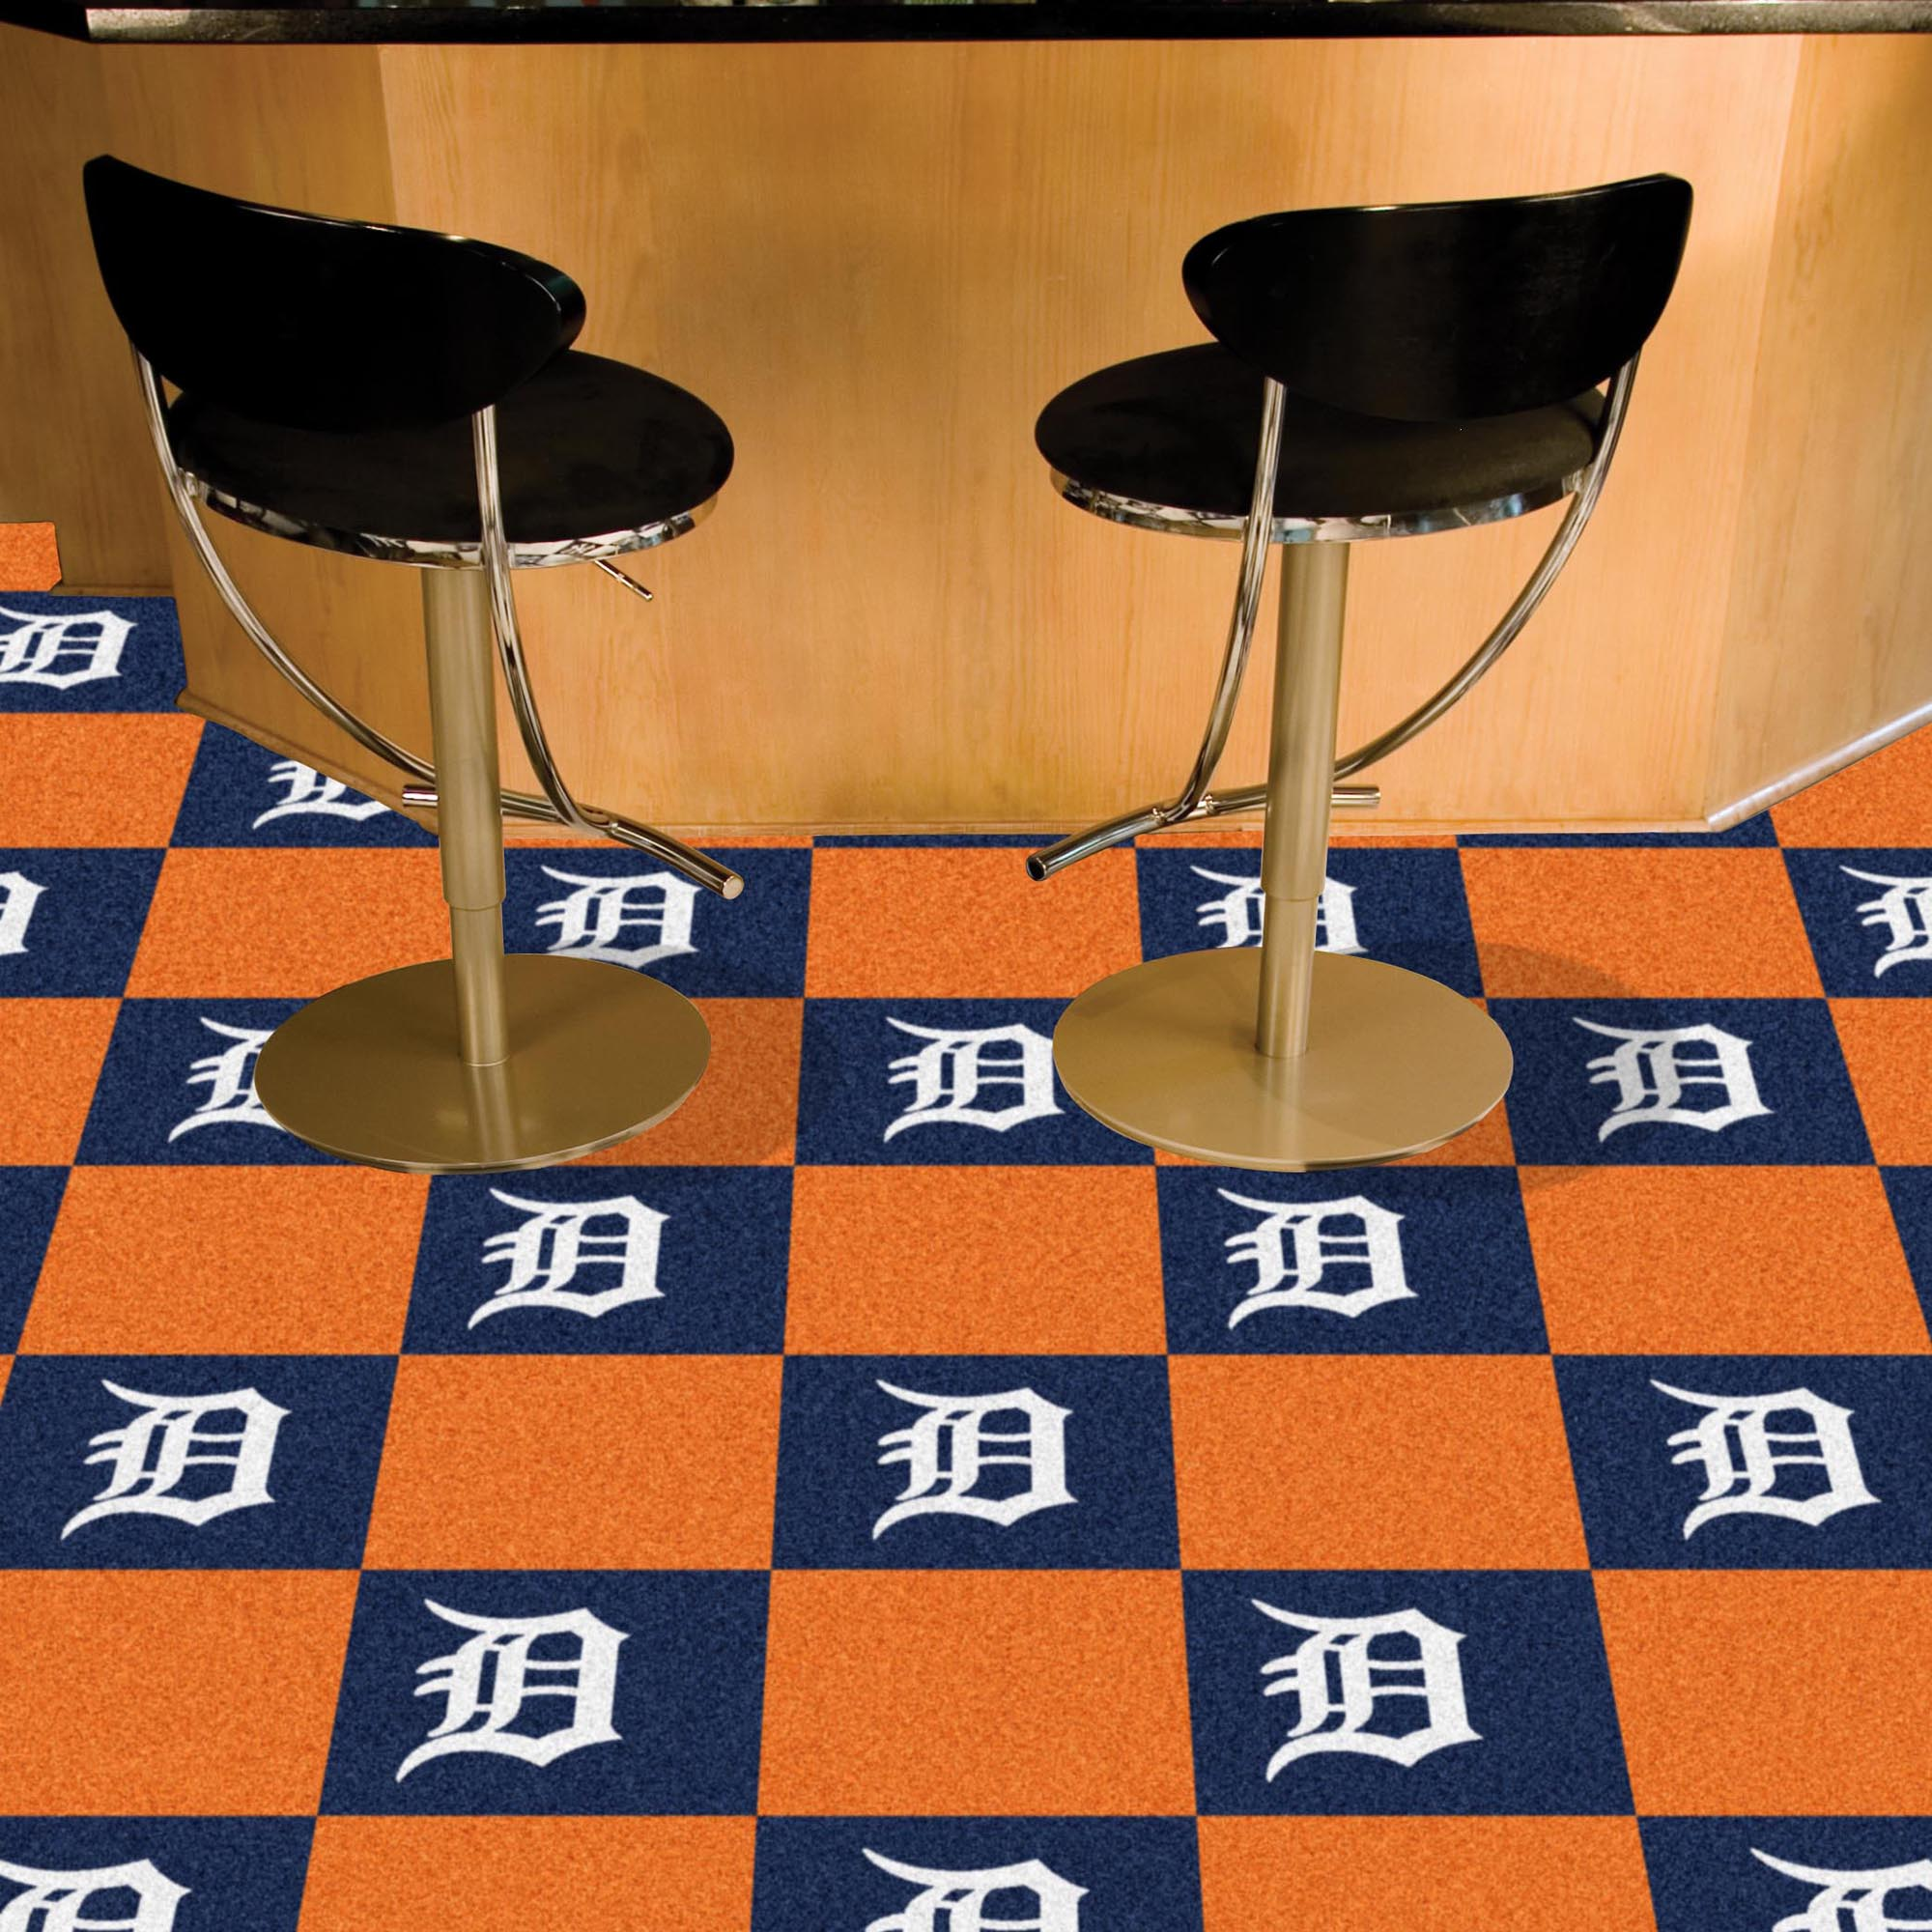 Detroit Tigers Carpet Tiles 18x18 in.